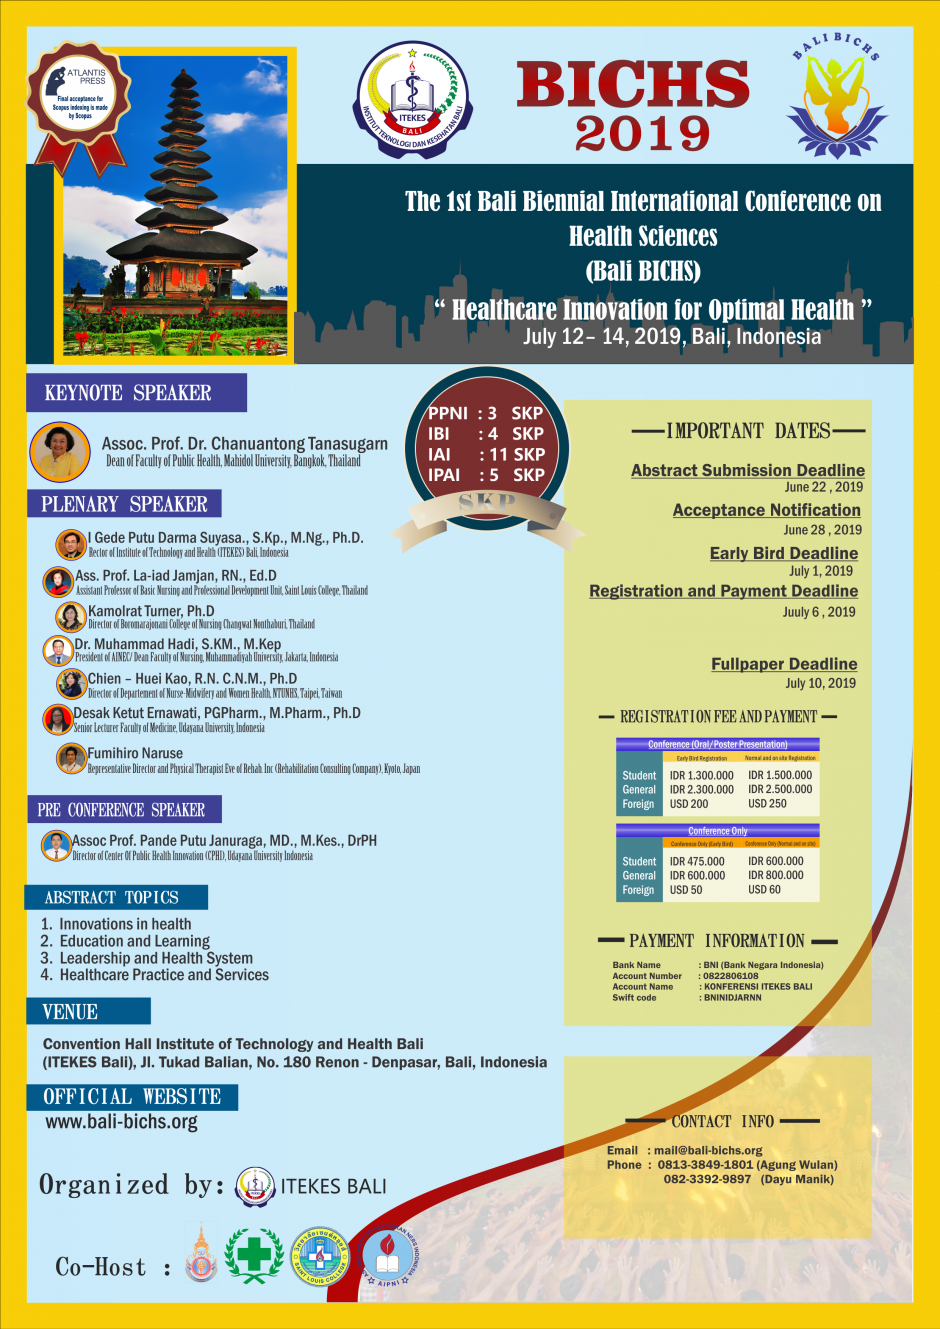 The 1st Bali Biennial International Conference on Health Sciences (Bali BICHS)